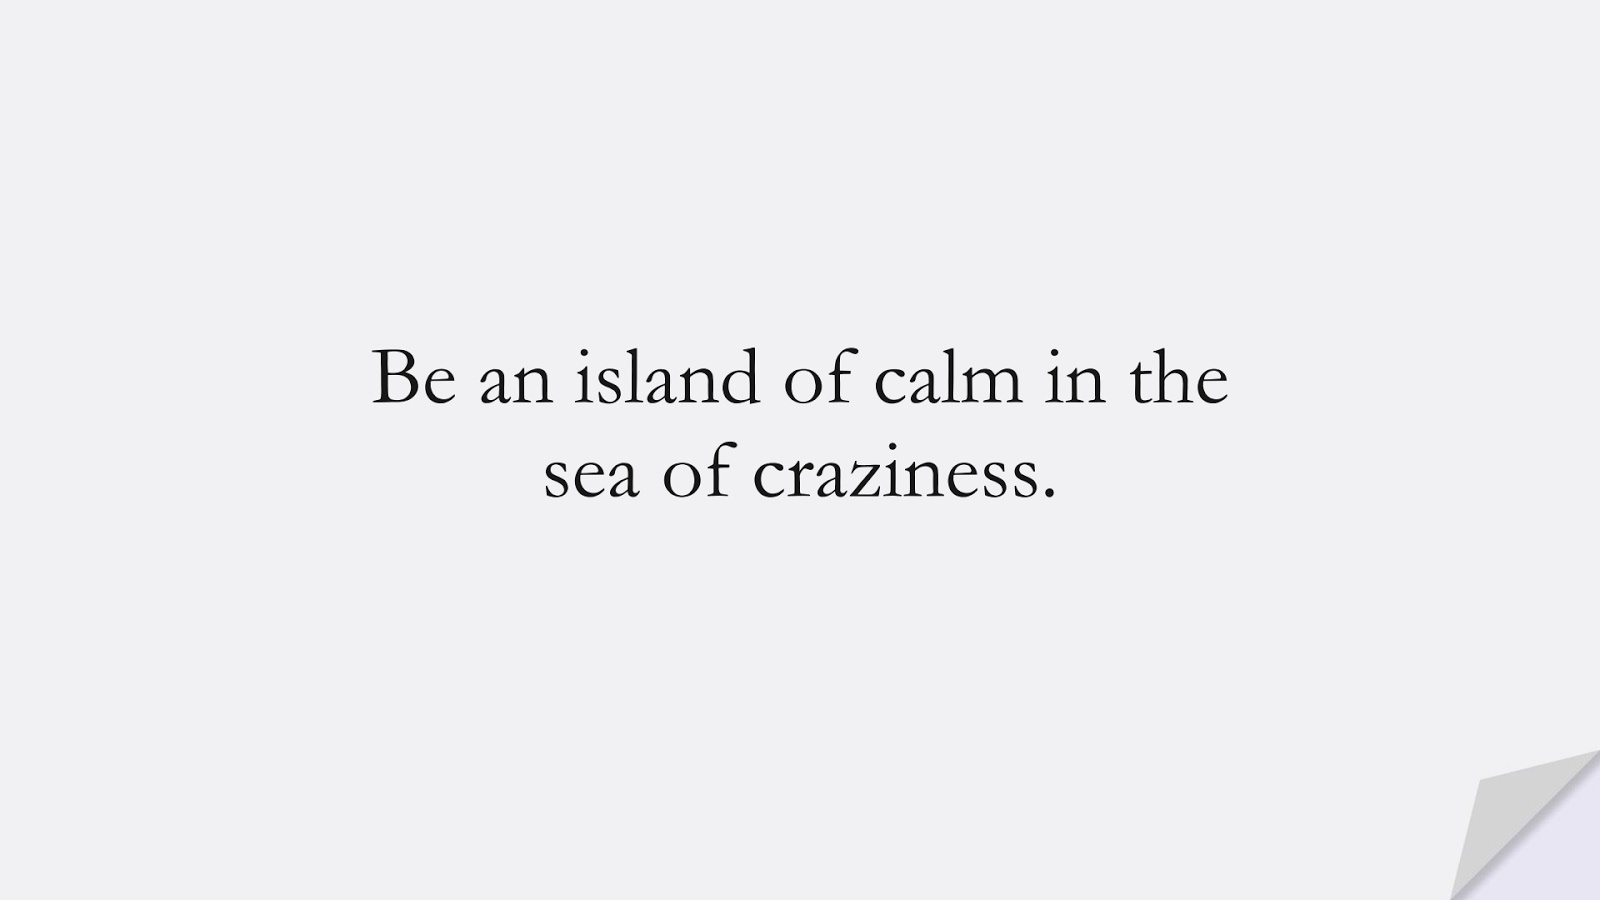 Be an island of calm in the sea of craziness.FALSE